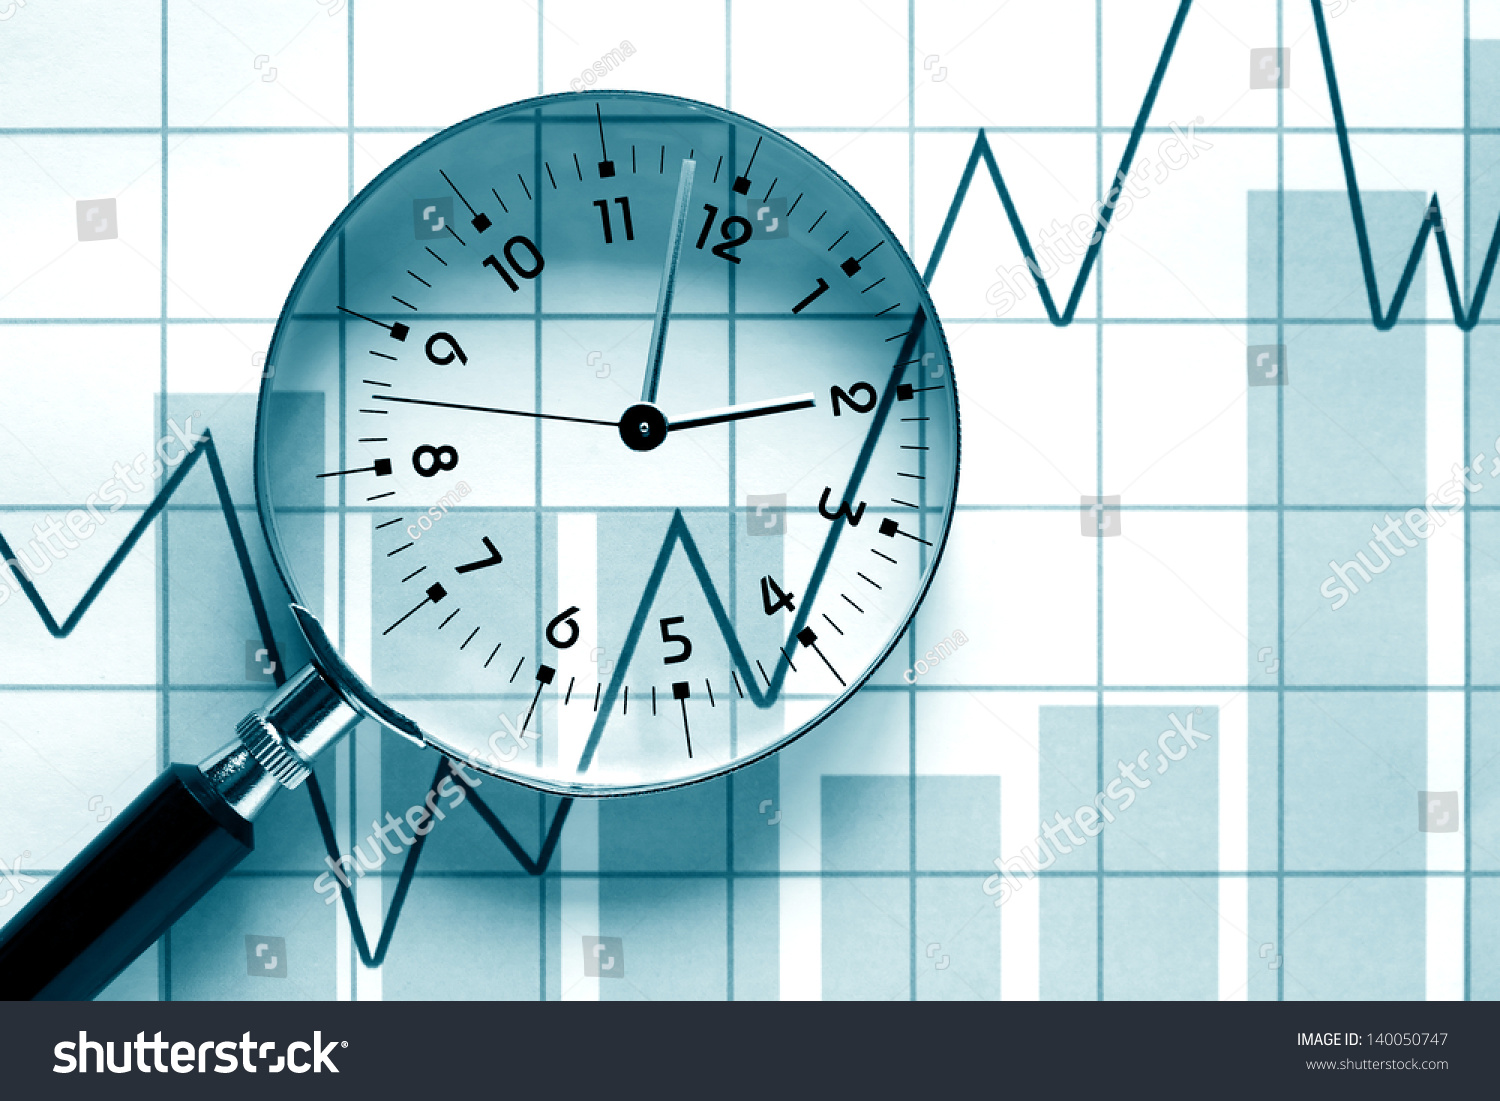 hight resolution of clock face inside magnifying glass on background with business chart